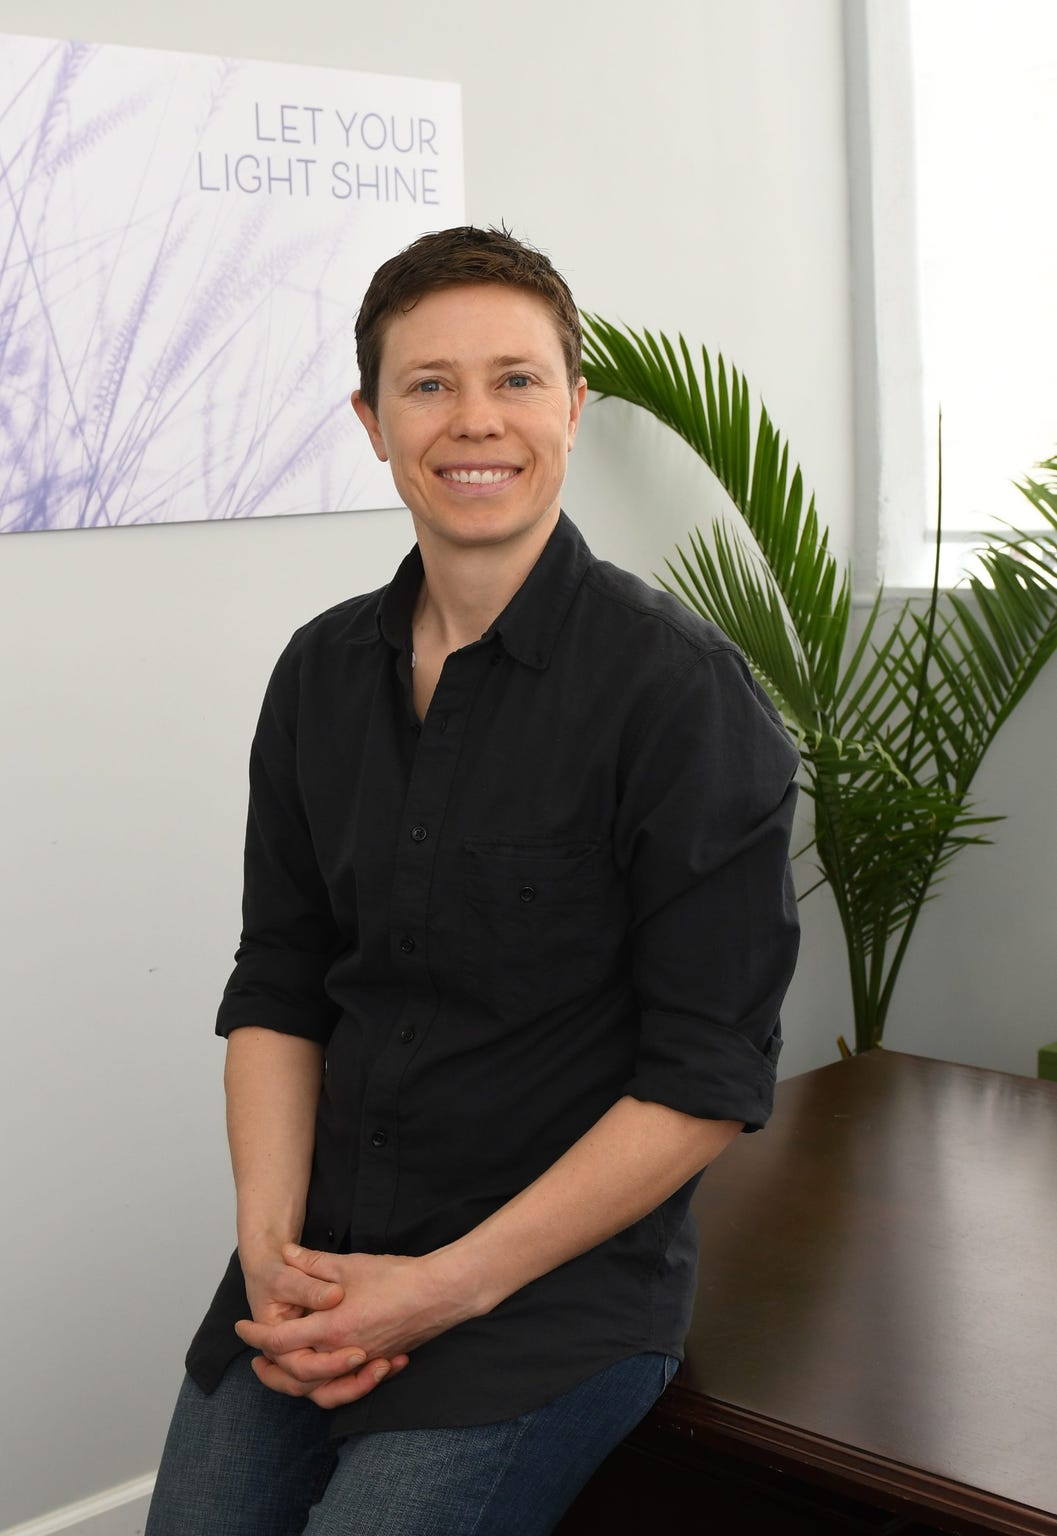 Dr. Izzy Powell, founder of QueerMed, which operates in part as a pop-up clinic providing hormone replacement therapy for transgender and non-binary people.